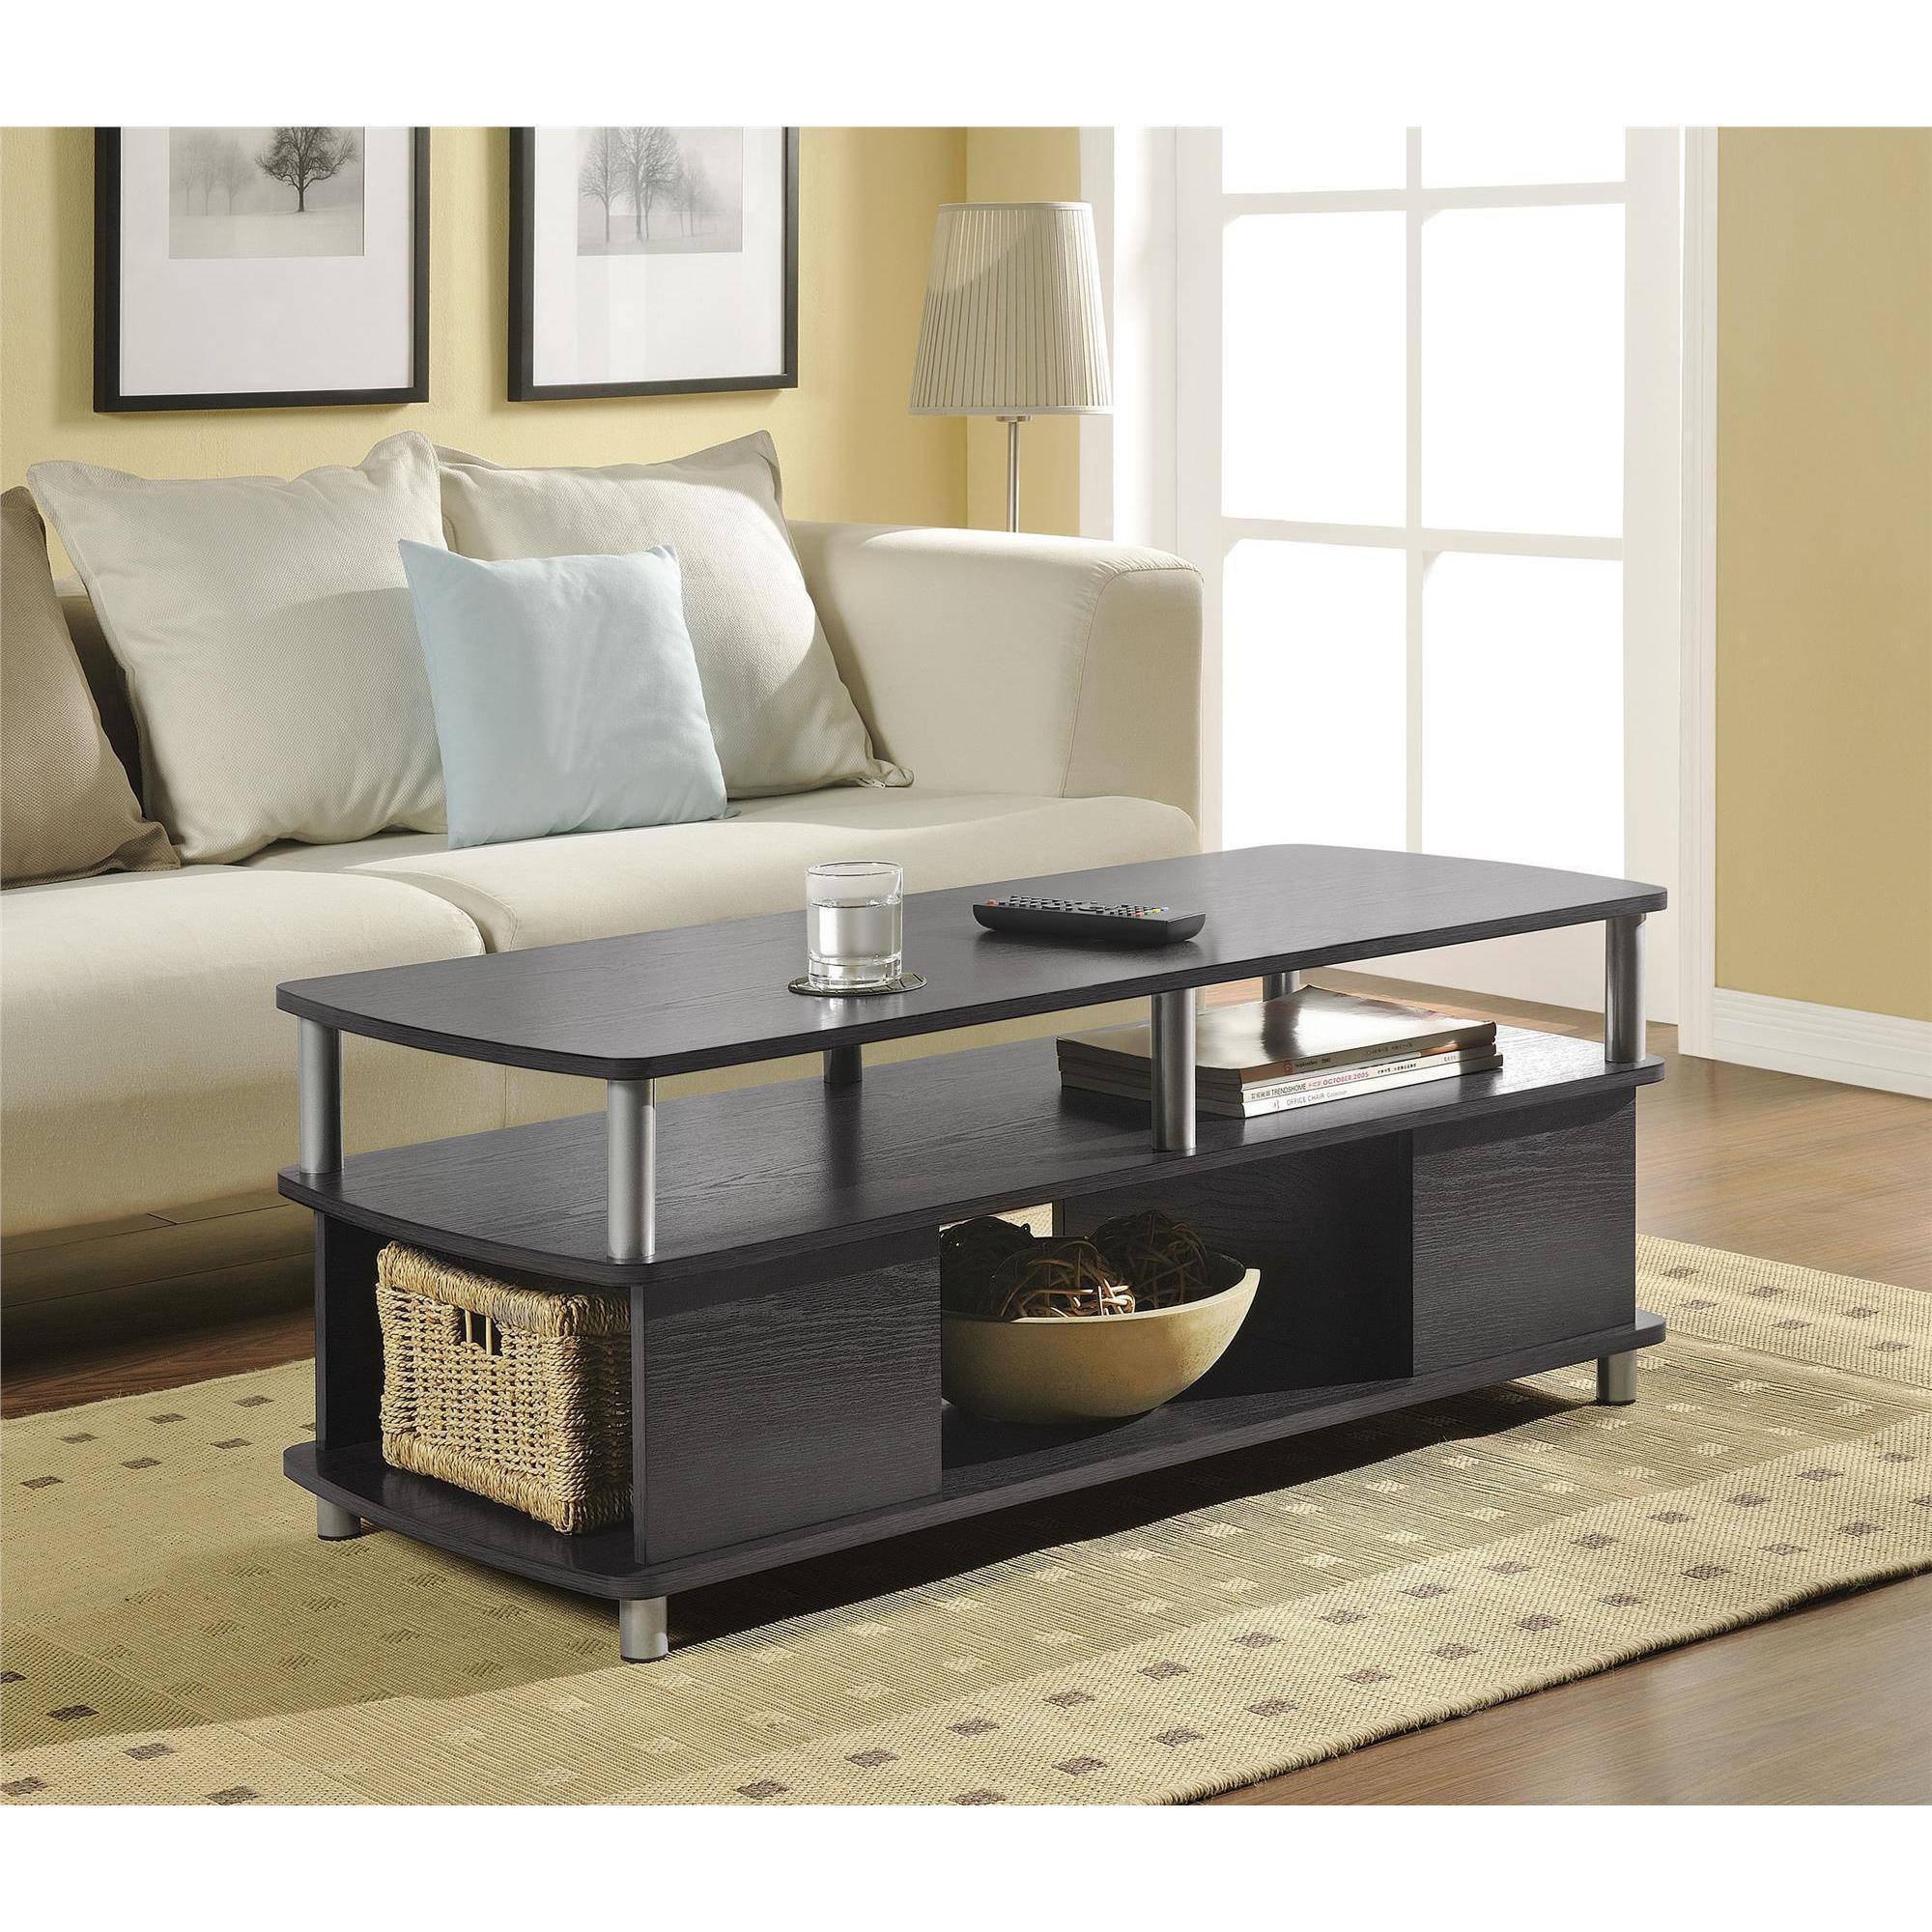 Yaheetech 3 Tier Modern Living Room Oval Glass Coffee Table Round Glass  Side End Tables With Chrome Finish Legs Cocktail Table   Walmart.com